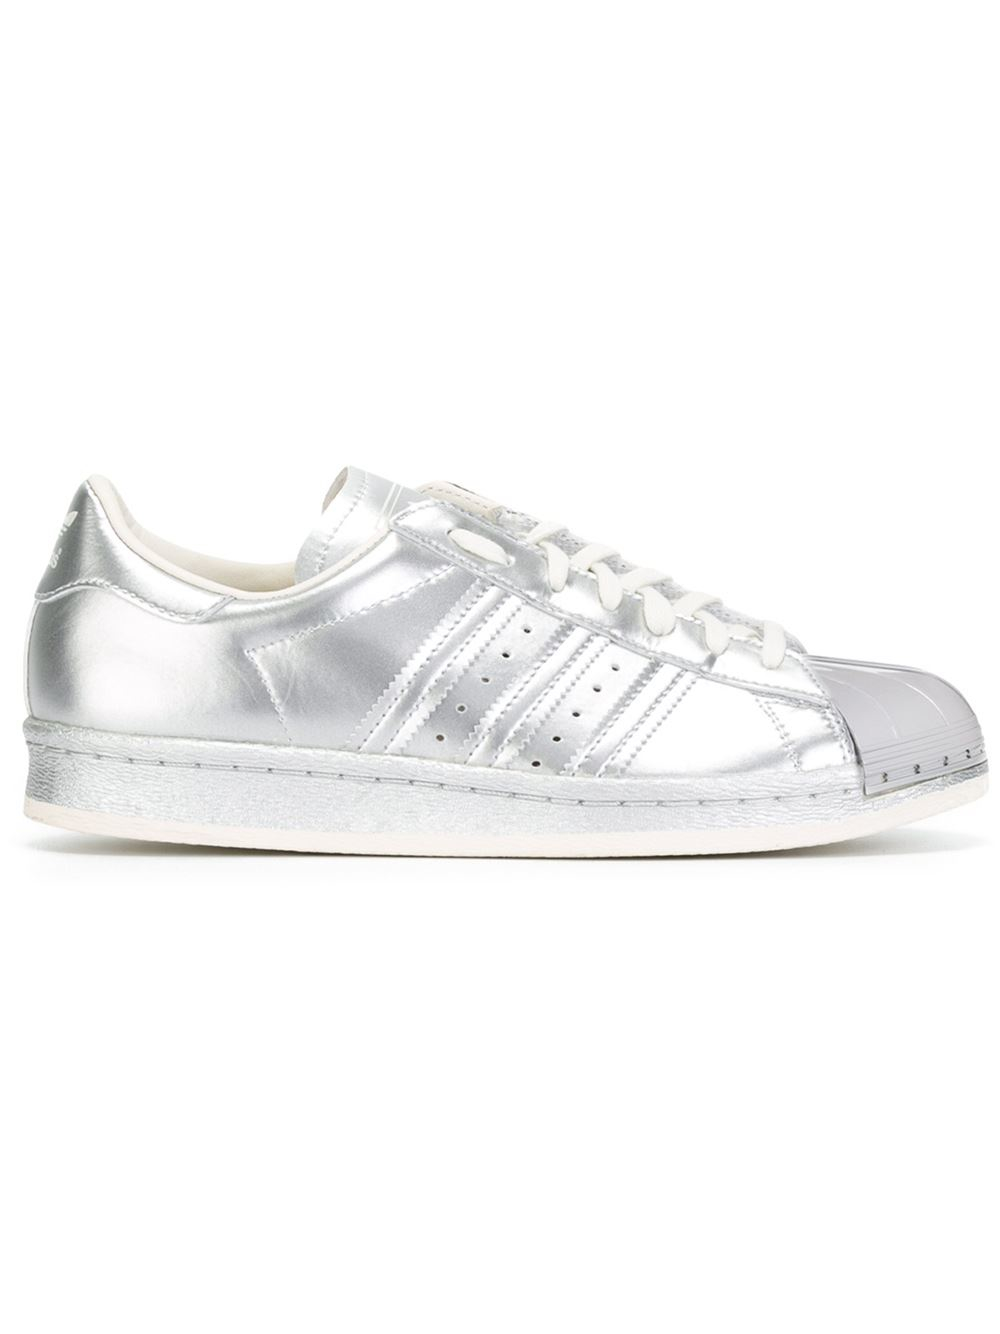 adidas Women's Superstar 80s Leather Sneakers Barneys New York